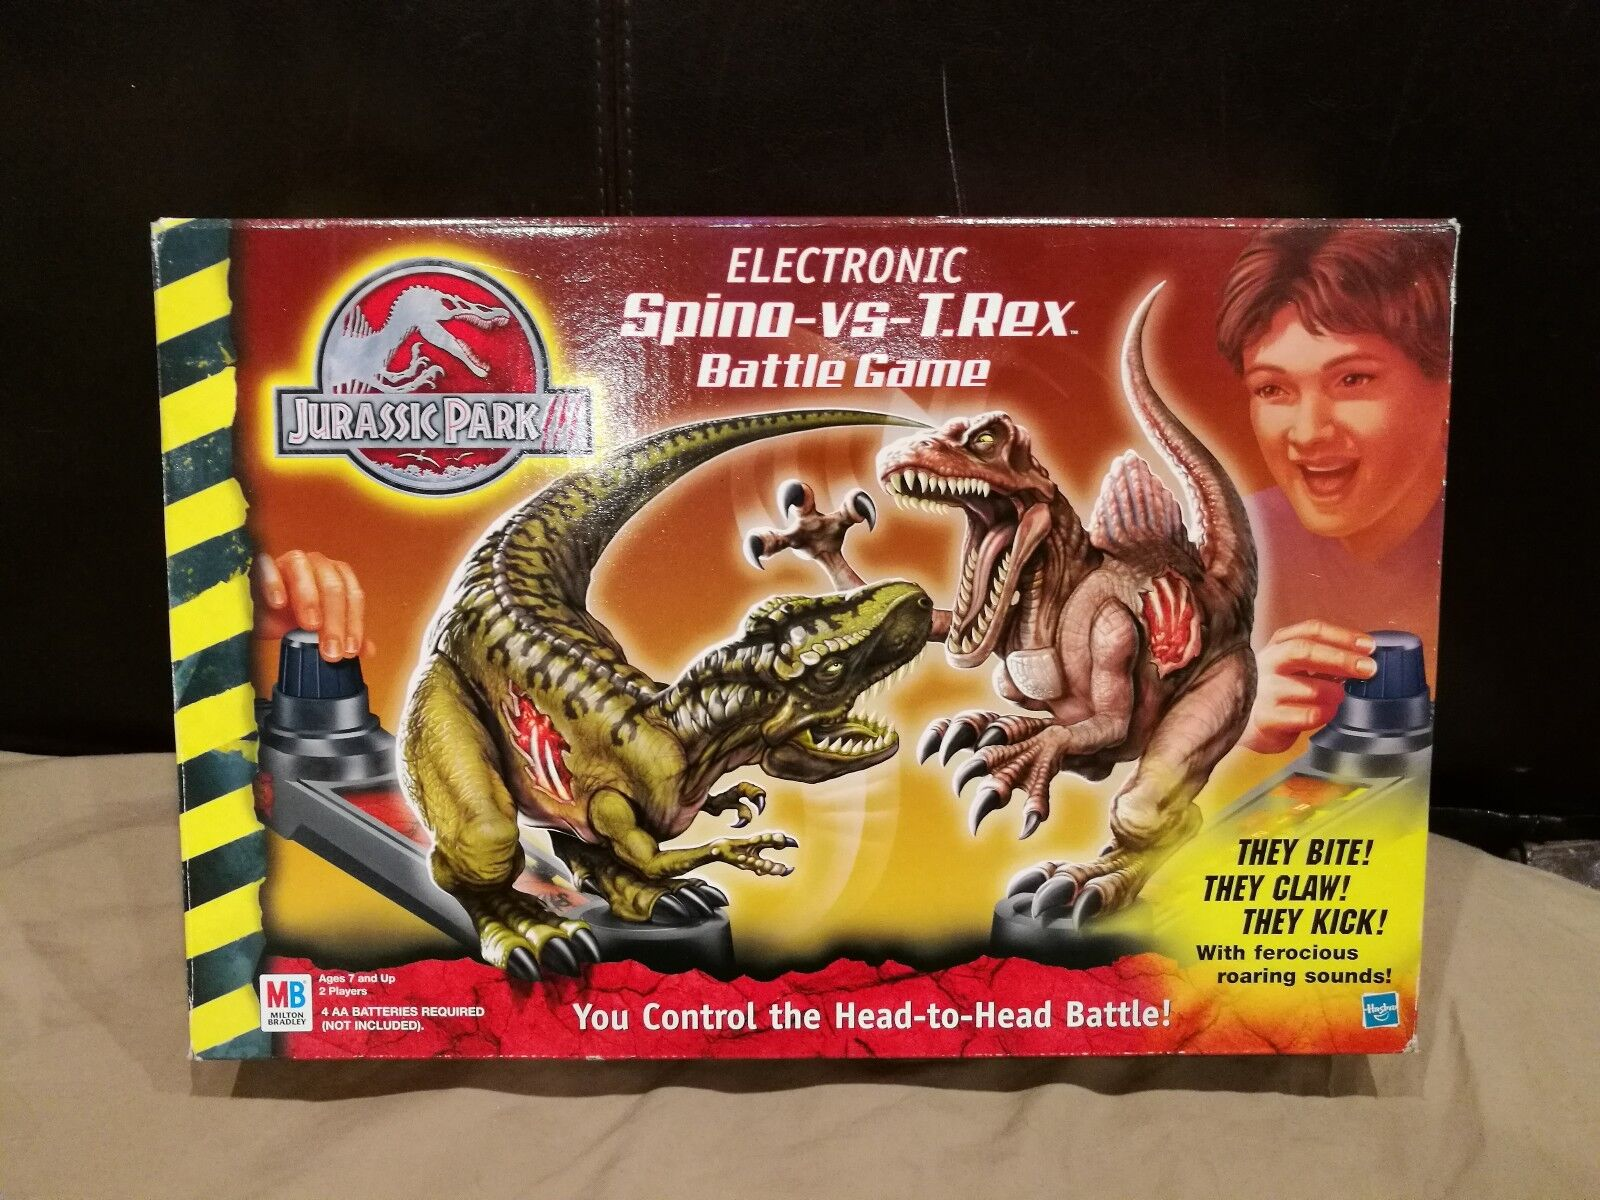 Jurassic Park 3 Electronic Spino vs T.Rex Battle Game boxed